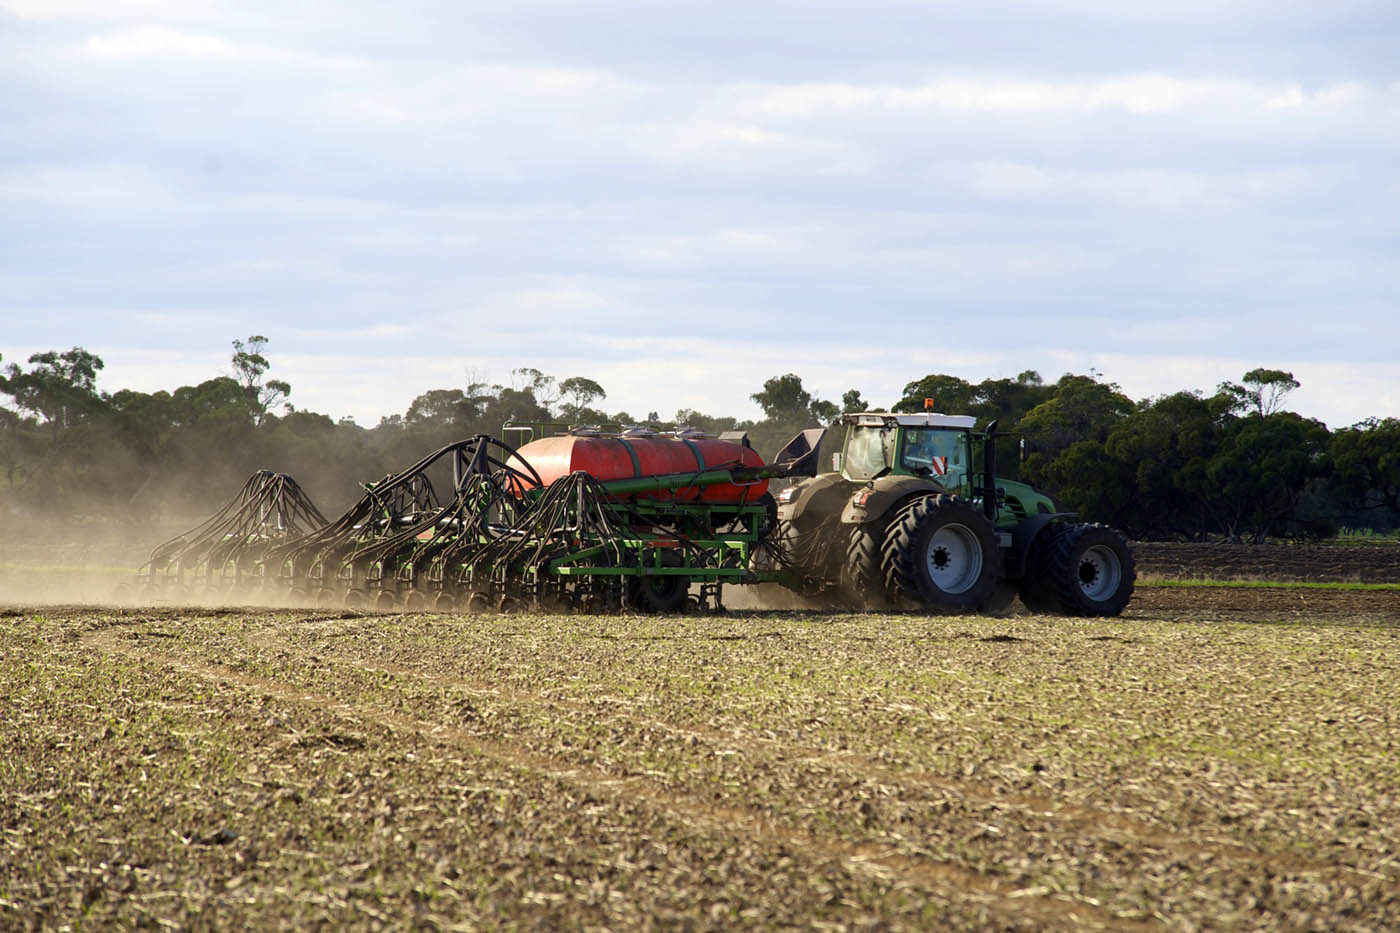 A farming contractor sowing farmland.